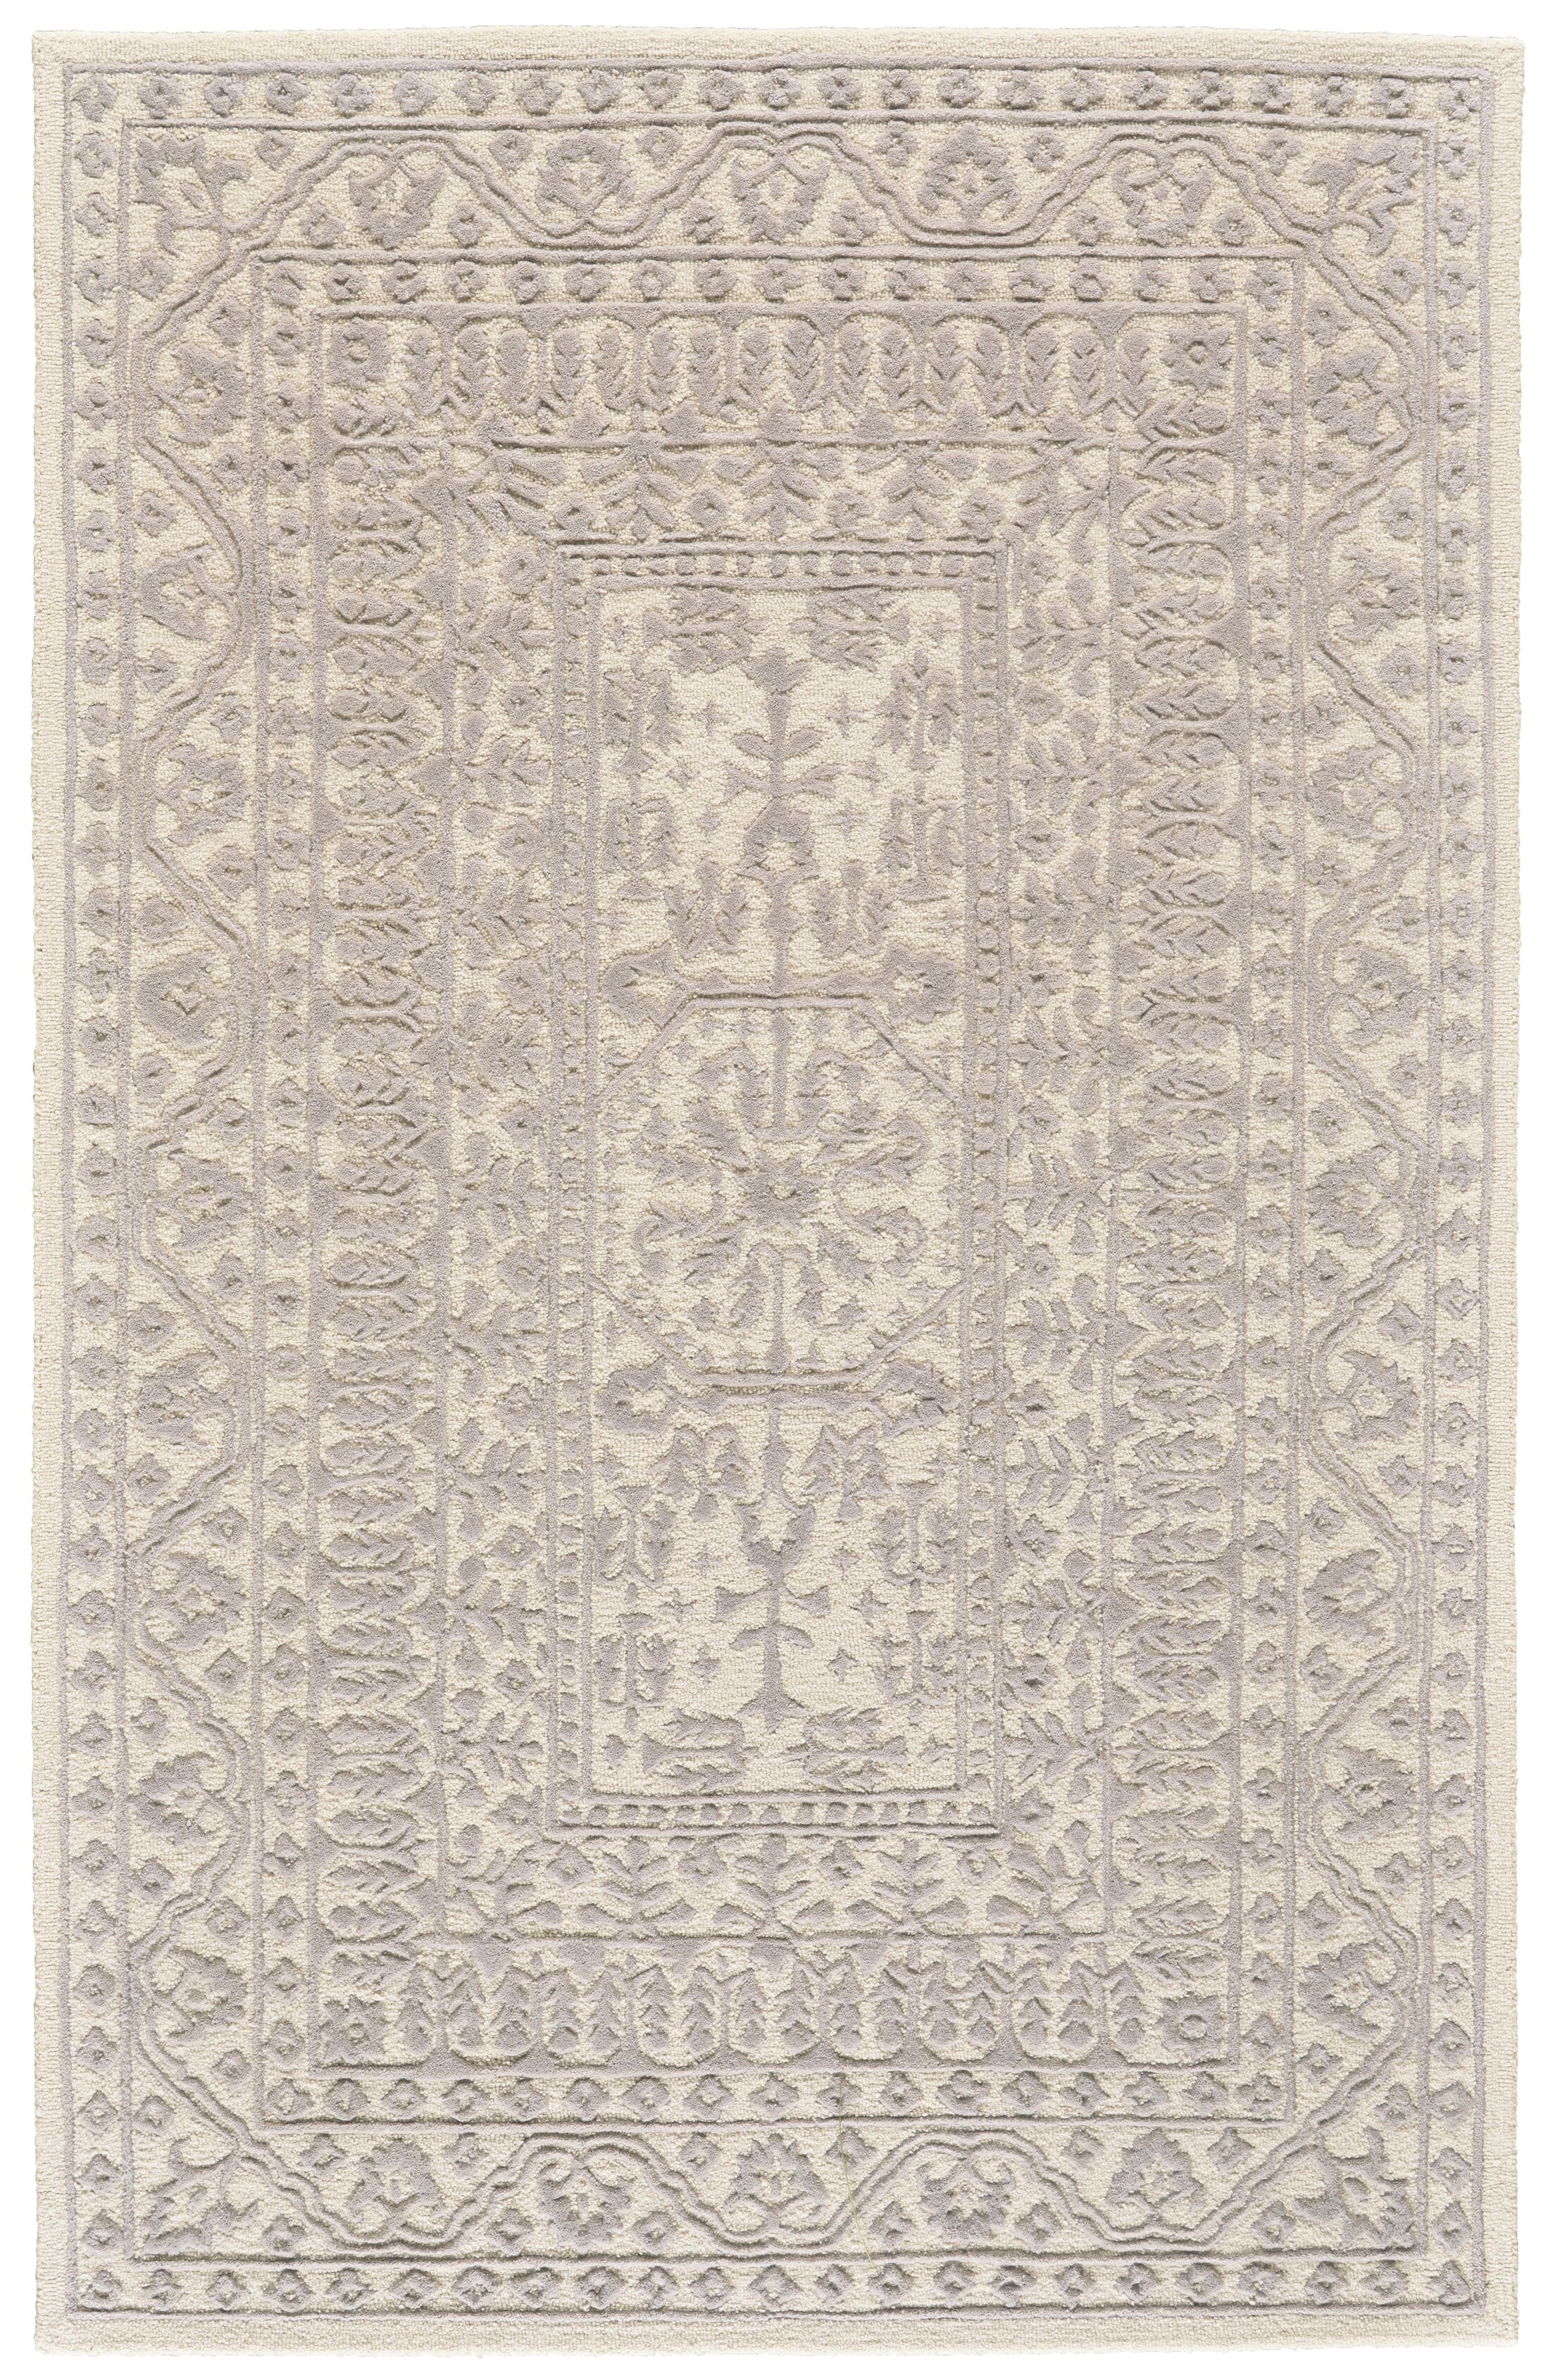 Griego Hand-Tufted Wool Ivory/Light Gray Area Rug Rug Size: Rectangle 9'6